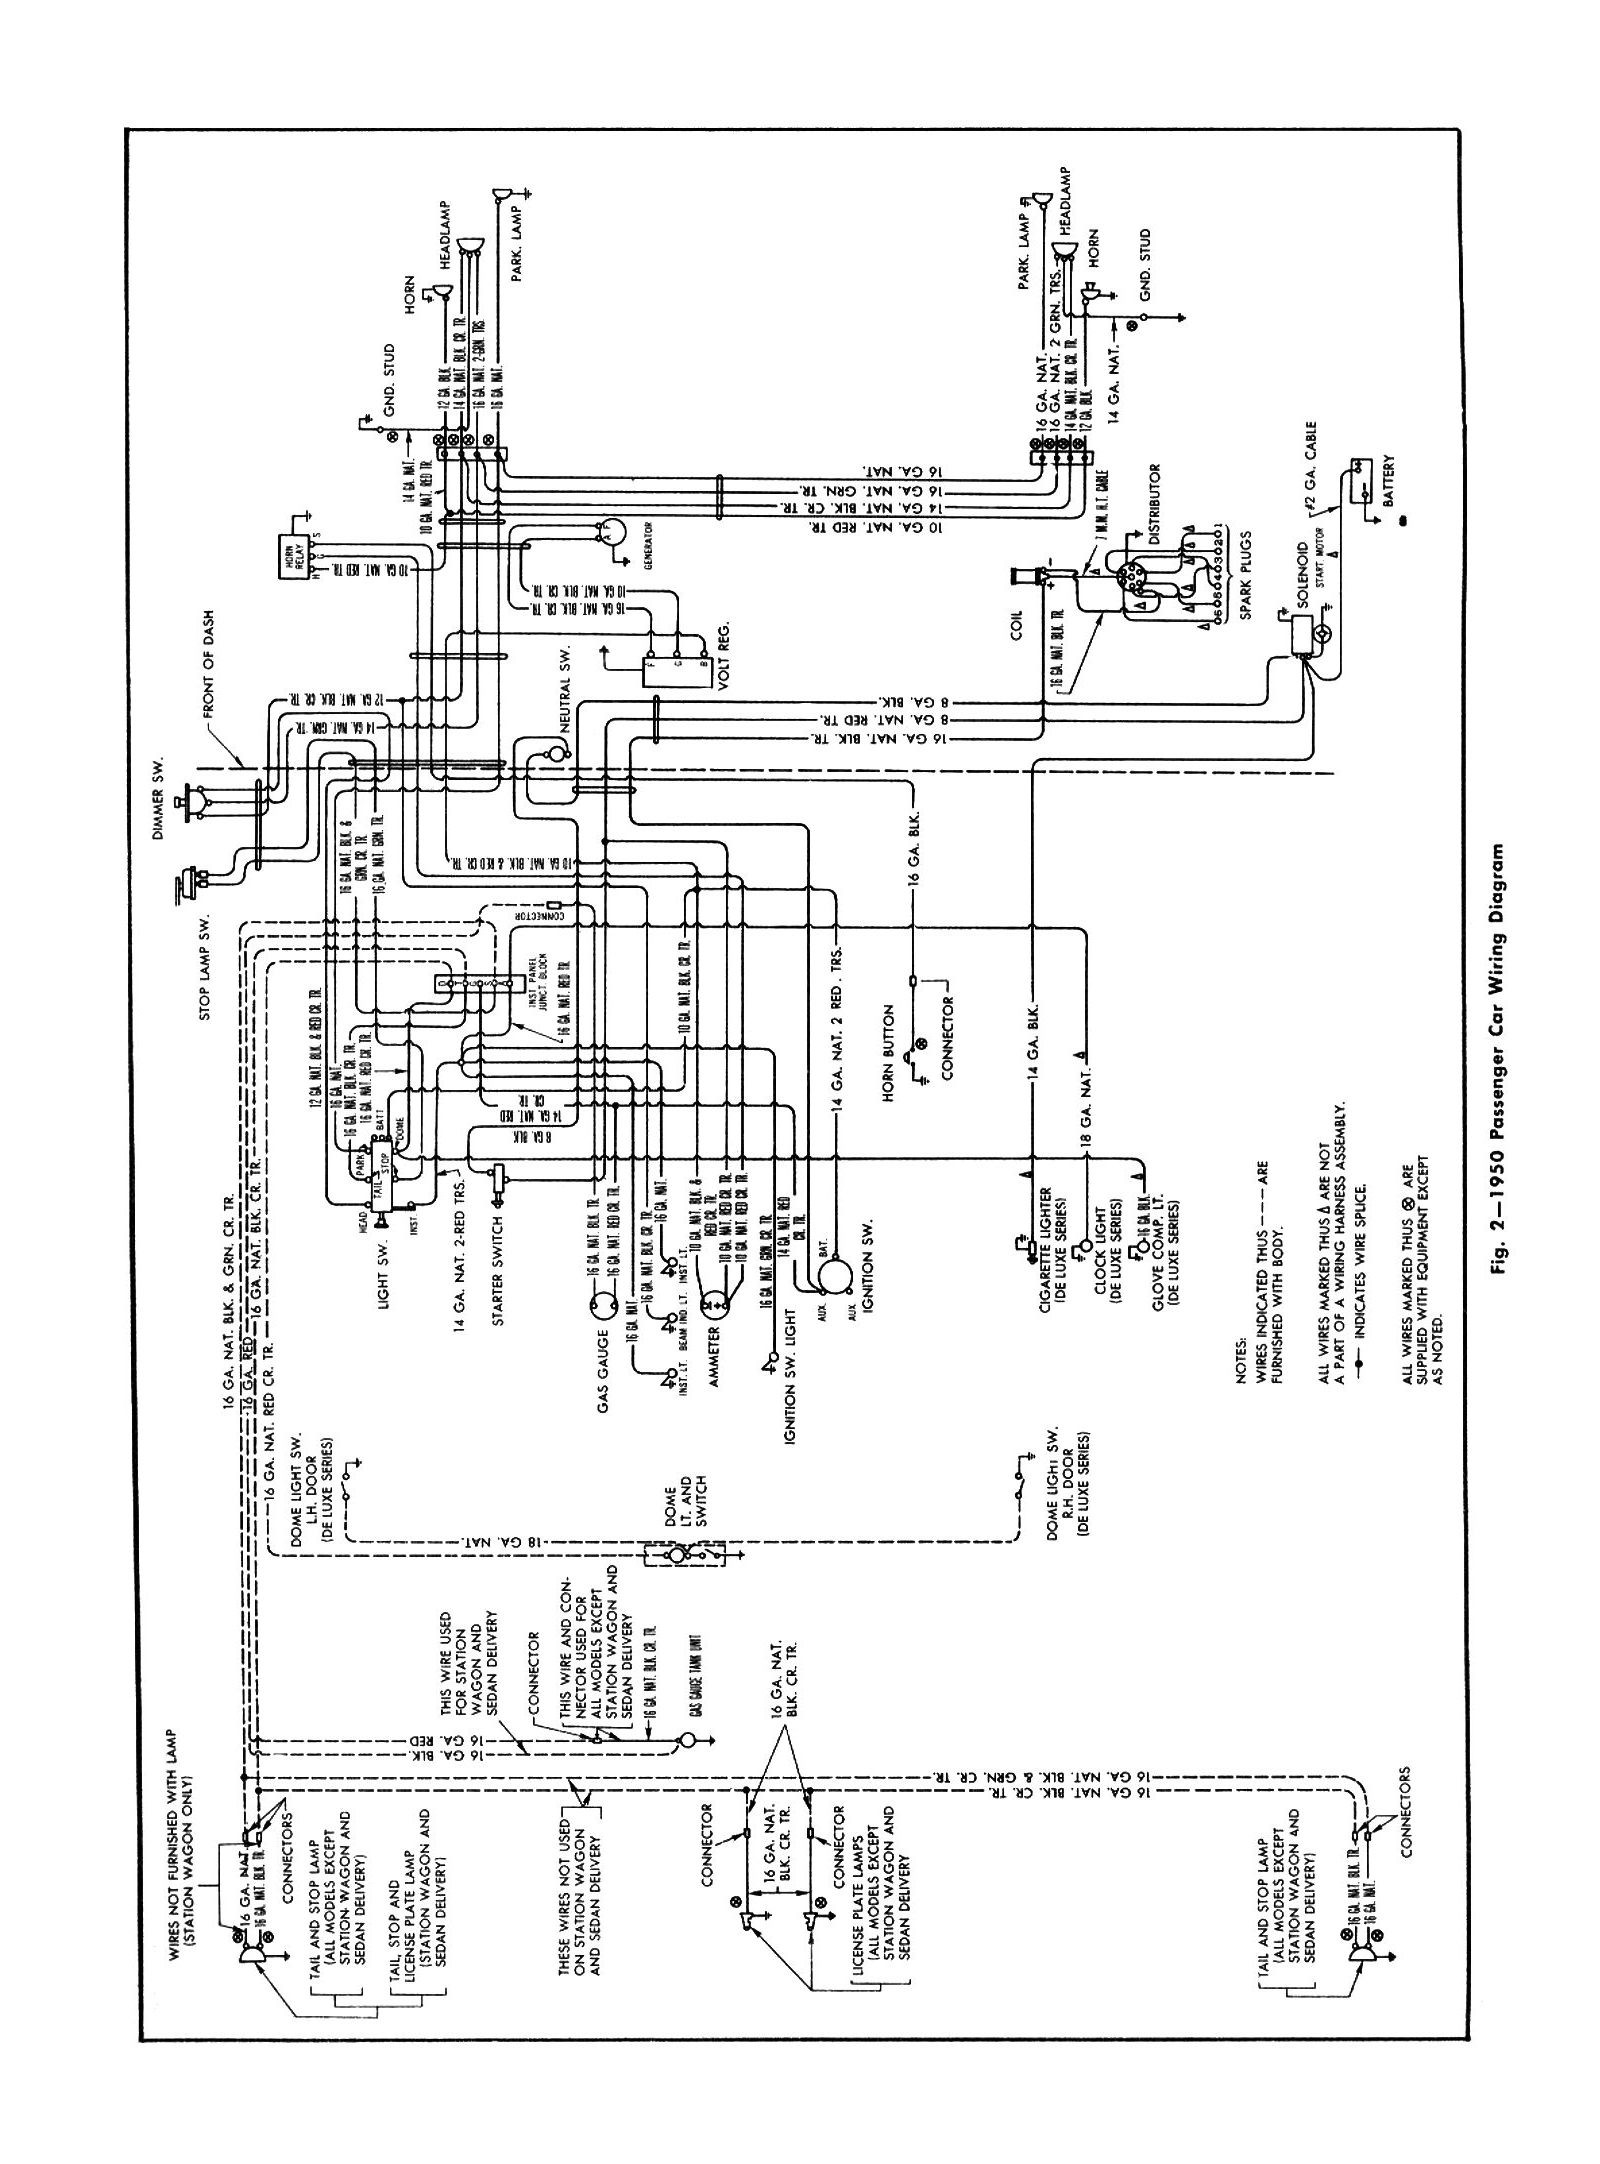 1952 Chevy Truck Turn Signal Wiring Diagram, 1952, Free